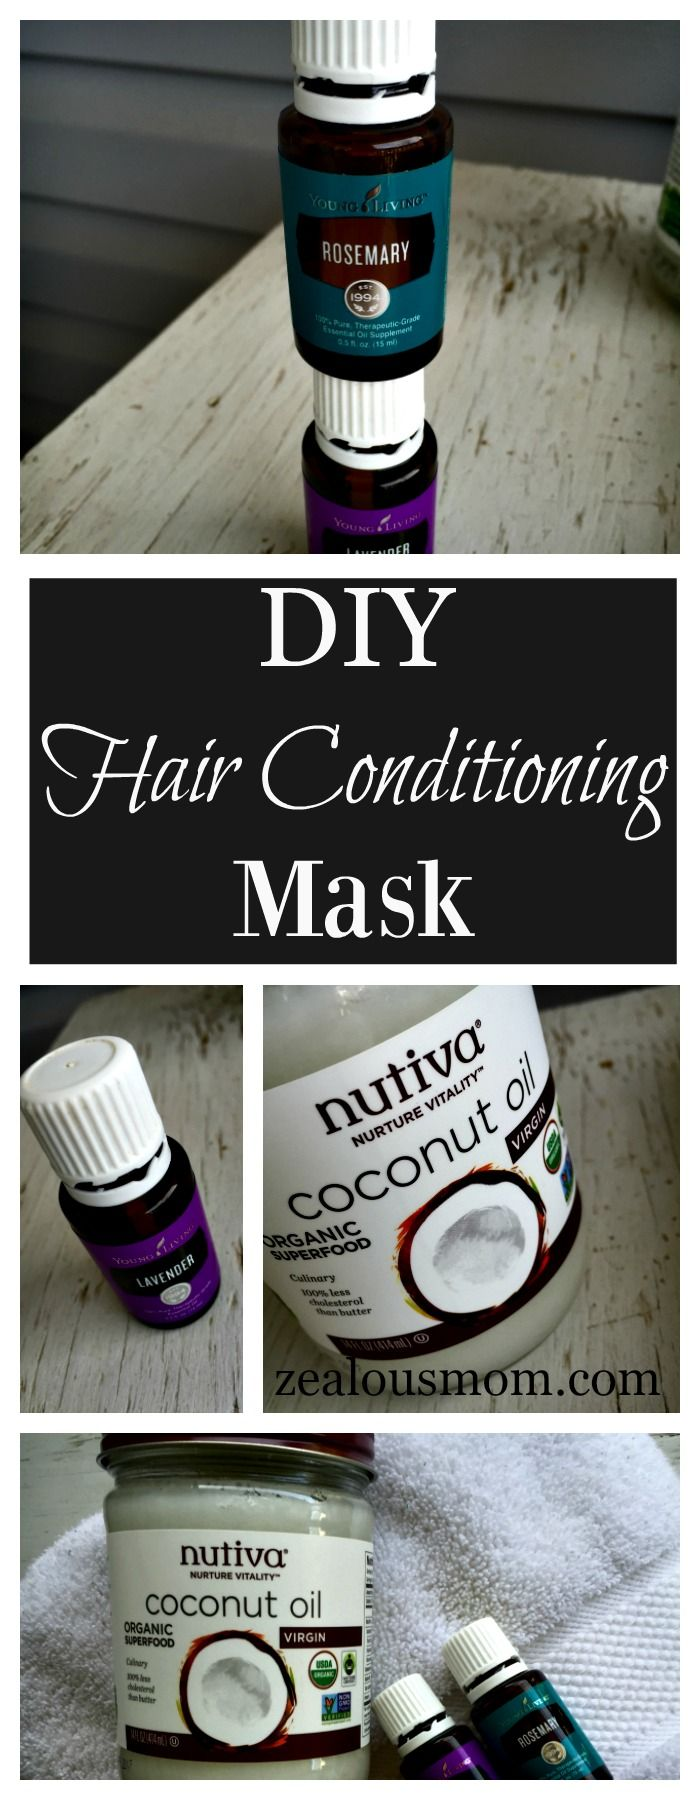 DIY hair conditioning mask – DIY